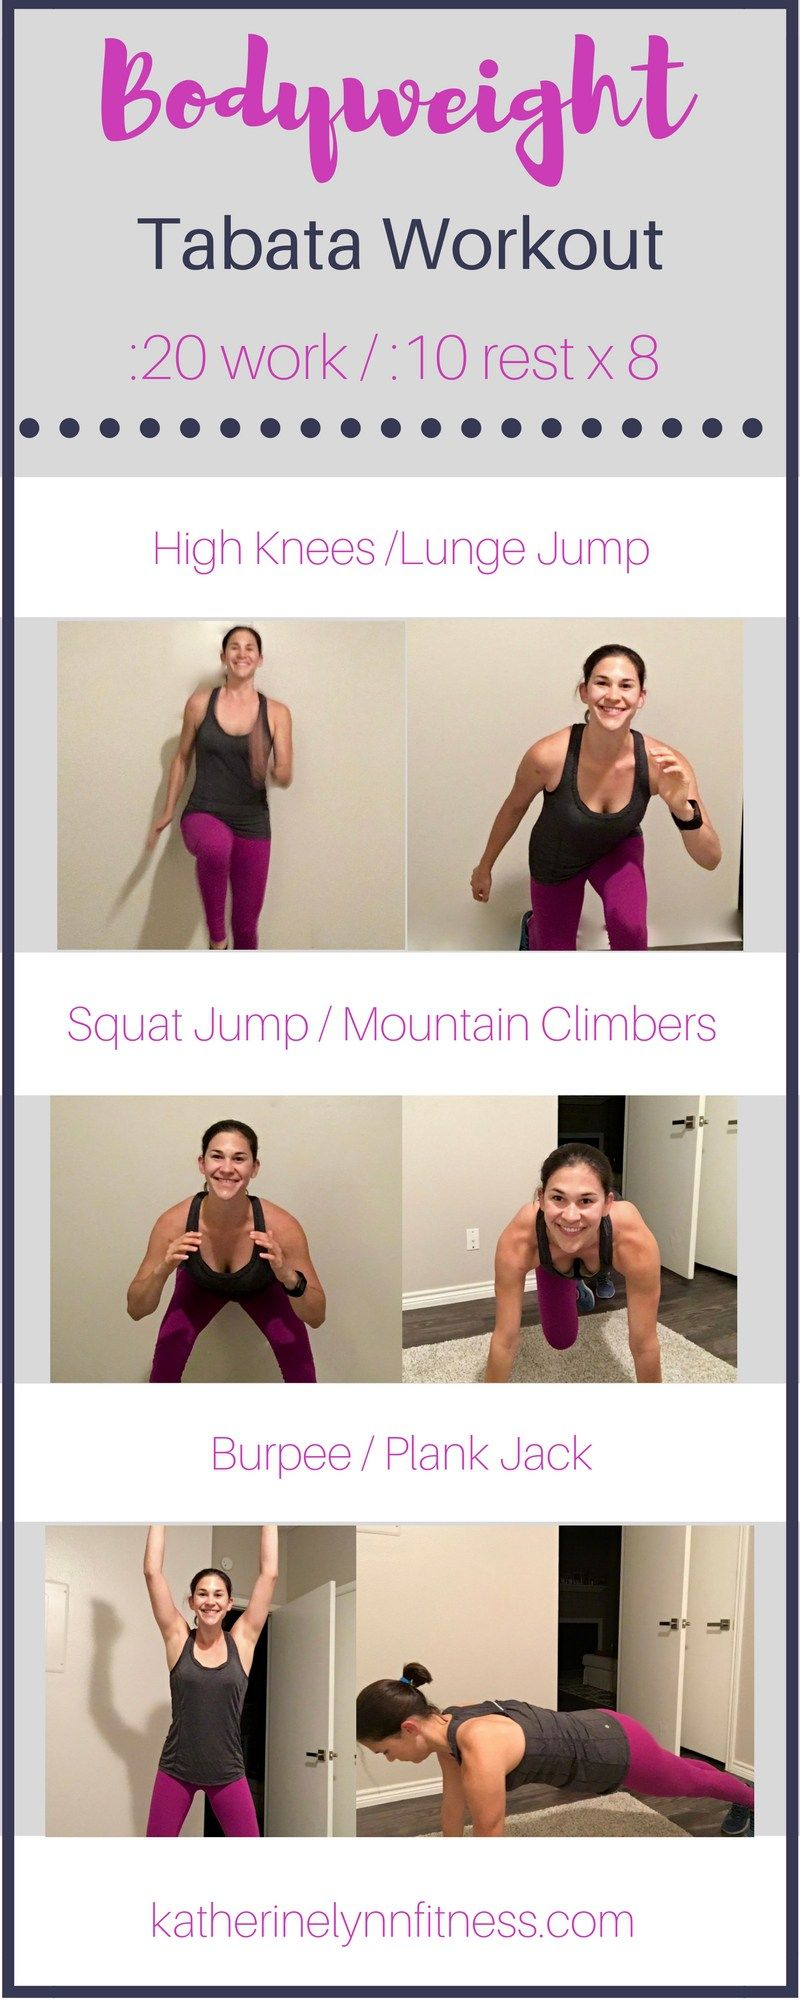 """Do you find it hard to motivate yourself to workout while traveling? Or maybe you want to get your workout in while away but don't know where to start. Either way, this """"do anywhere"""" workout is absolutely perfect for you because we're taking it bodyweight!"""